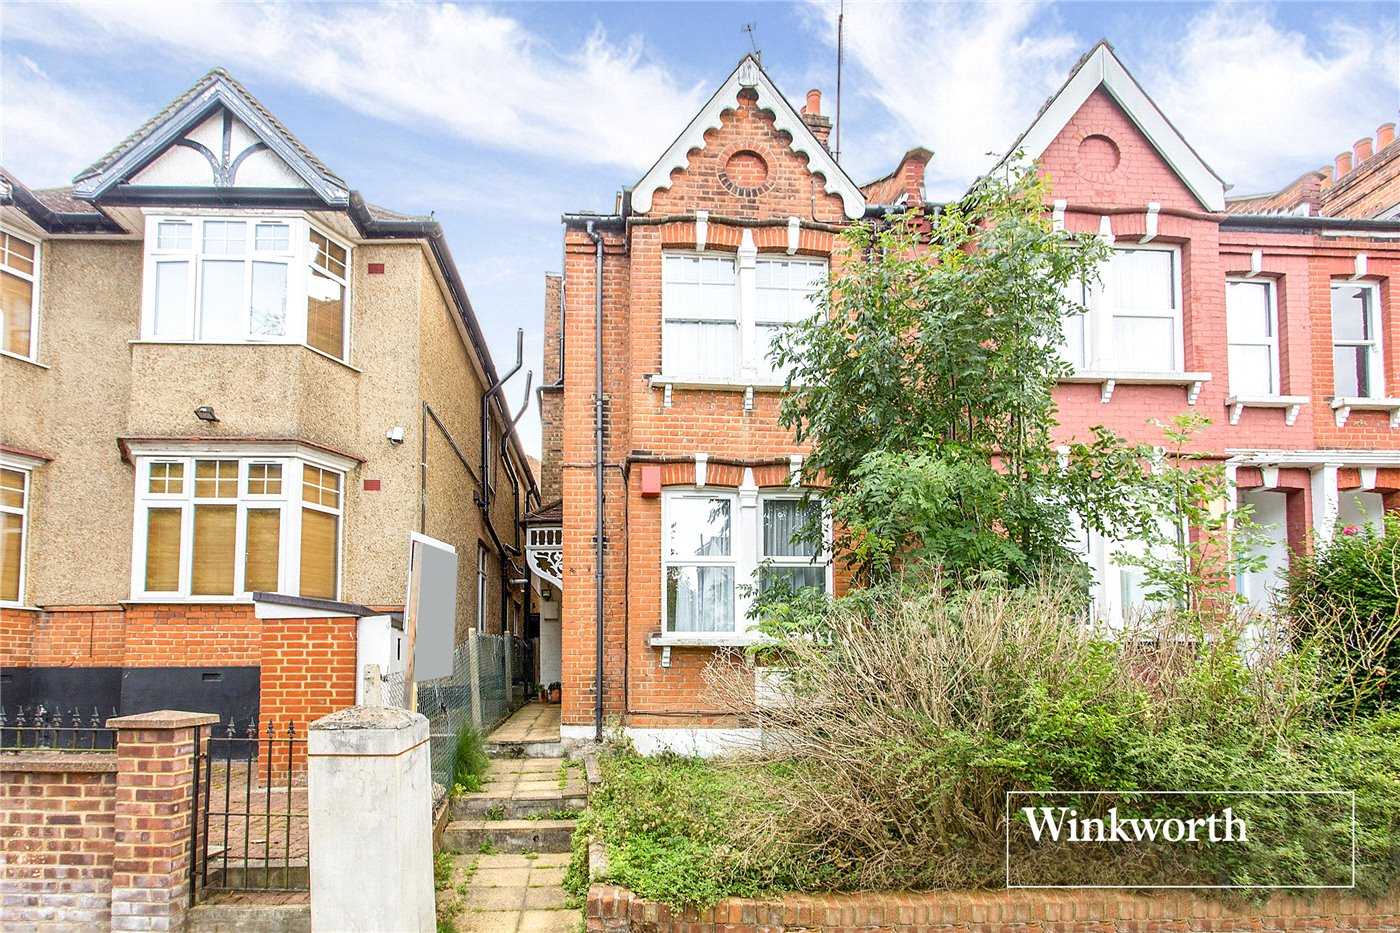 3 Bedrooms Maisonette Flat for sale in Gordon Road, Finchley, London, N3